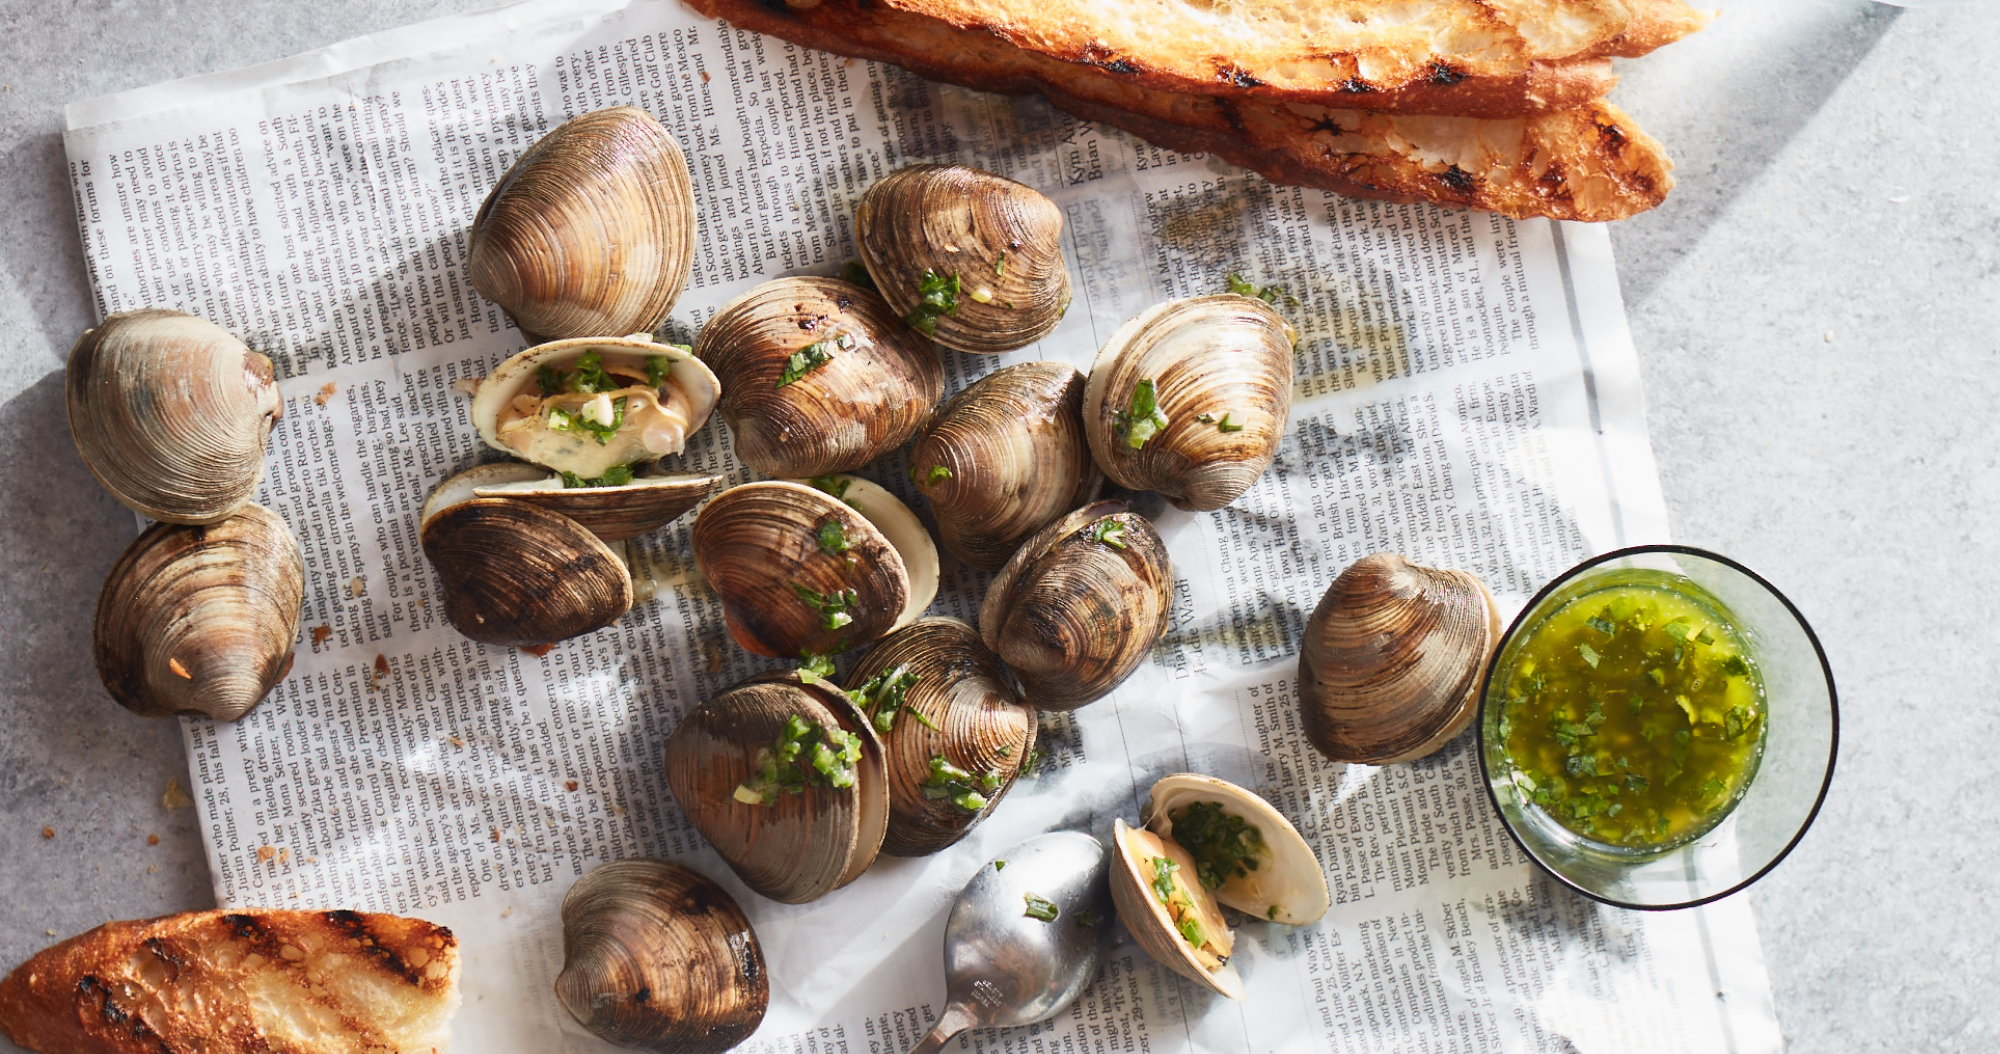 Grilled Clams with Jalapeno-Herb Butter